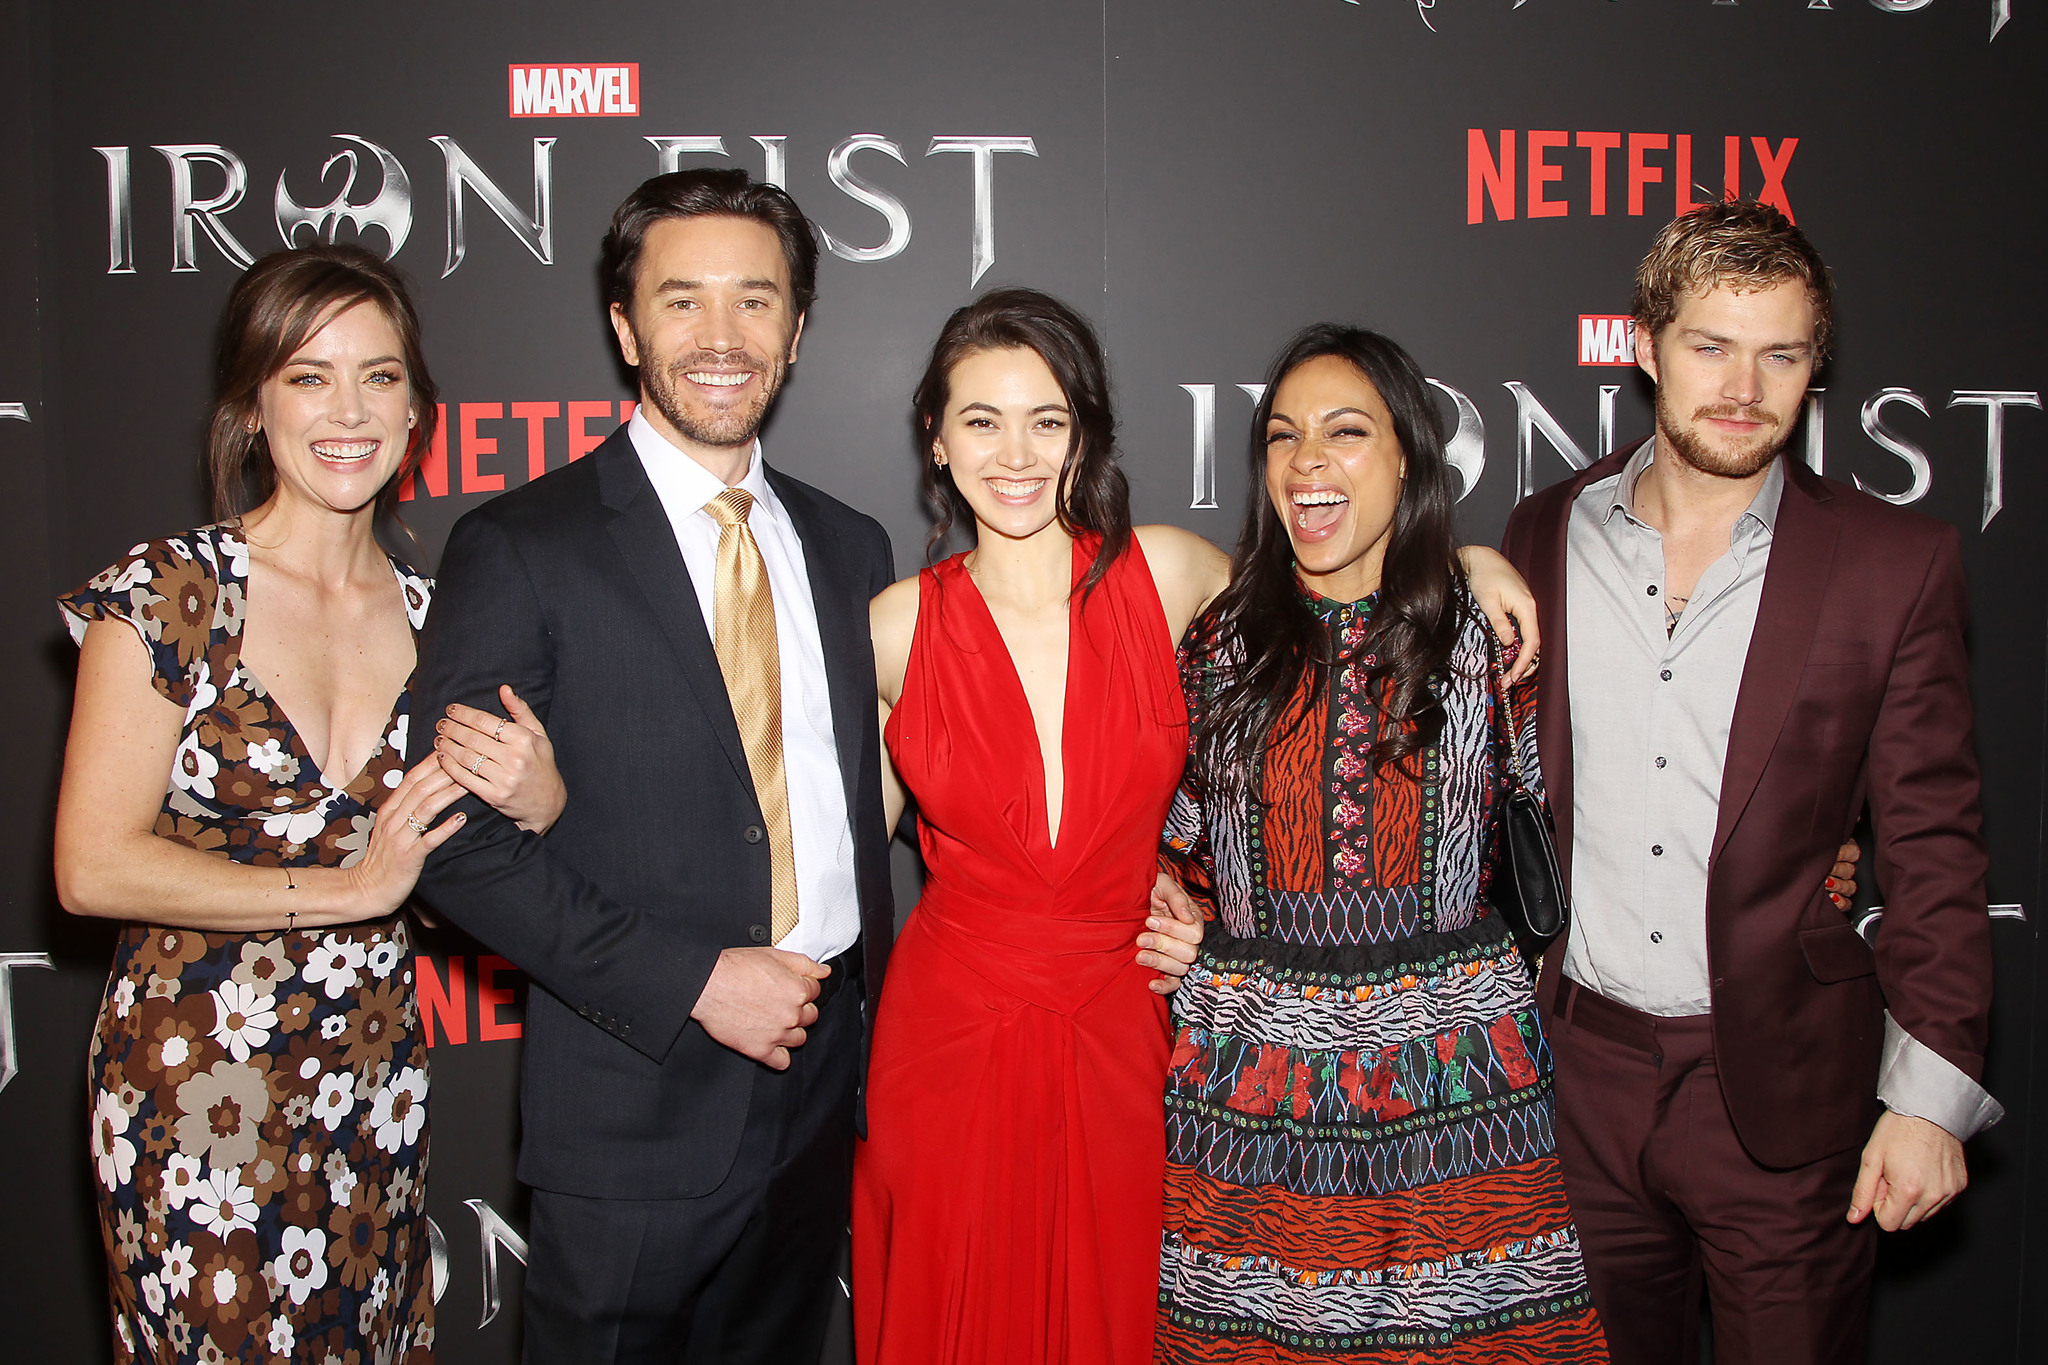 Rosario Dawson, Tom Pelphrey, Jessica Stroup, Finn Jones, and Jessica Henwick at an event for Iron Fist (2017)